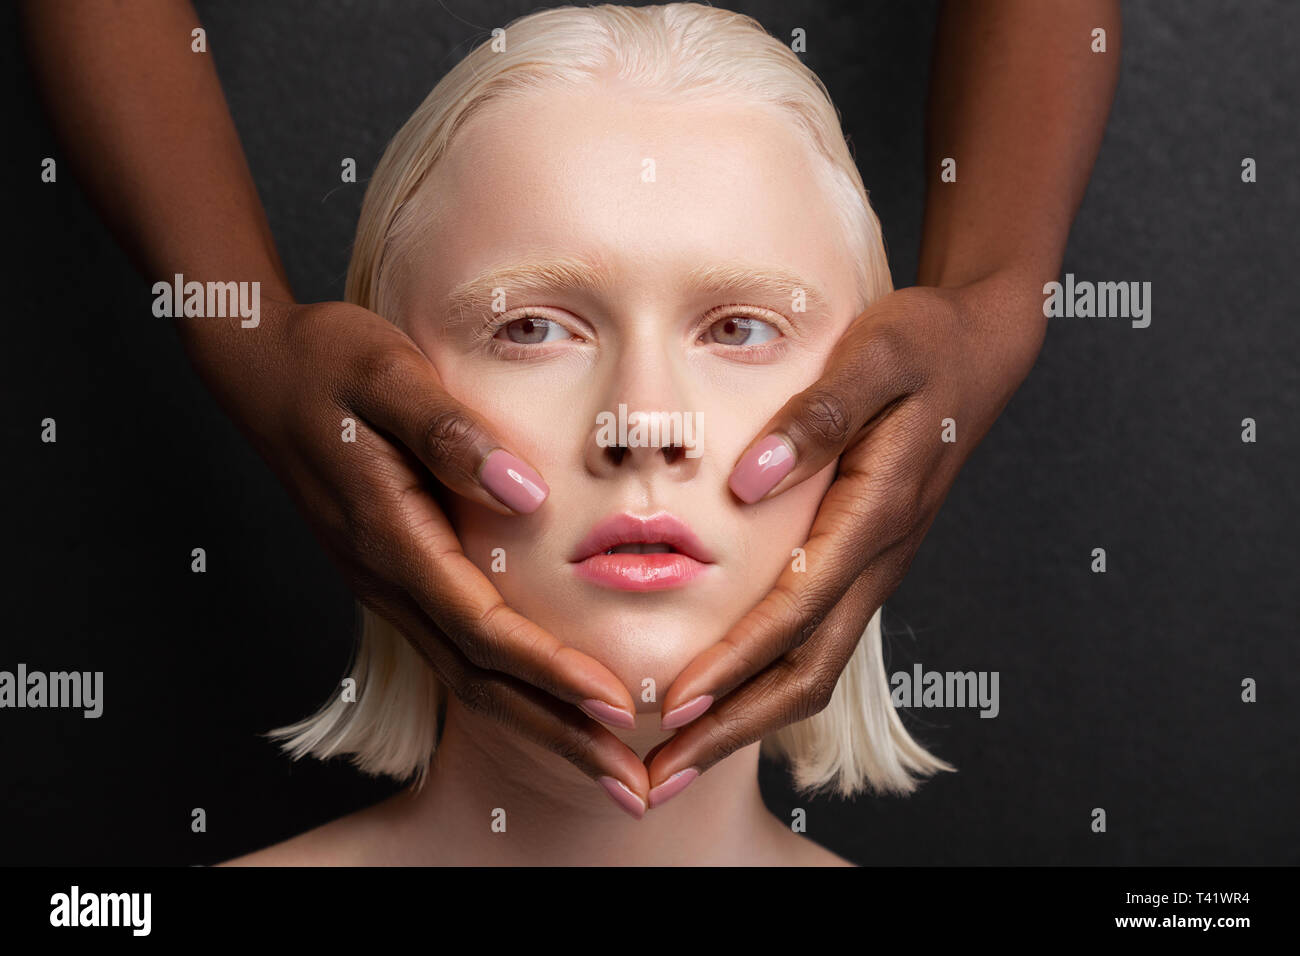 Dark-skinned hands with light pink nails touching white face - Stock Image